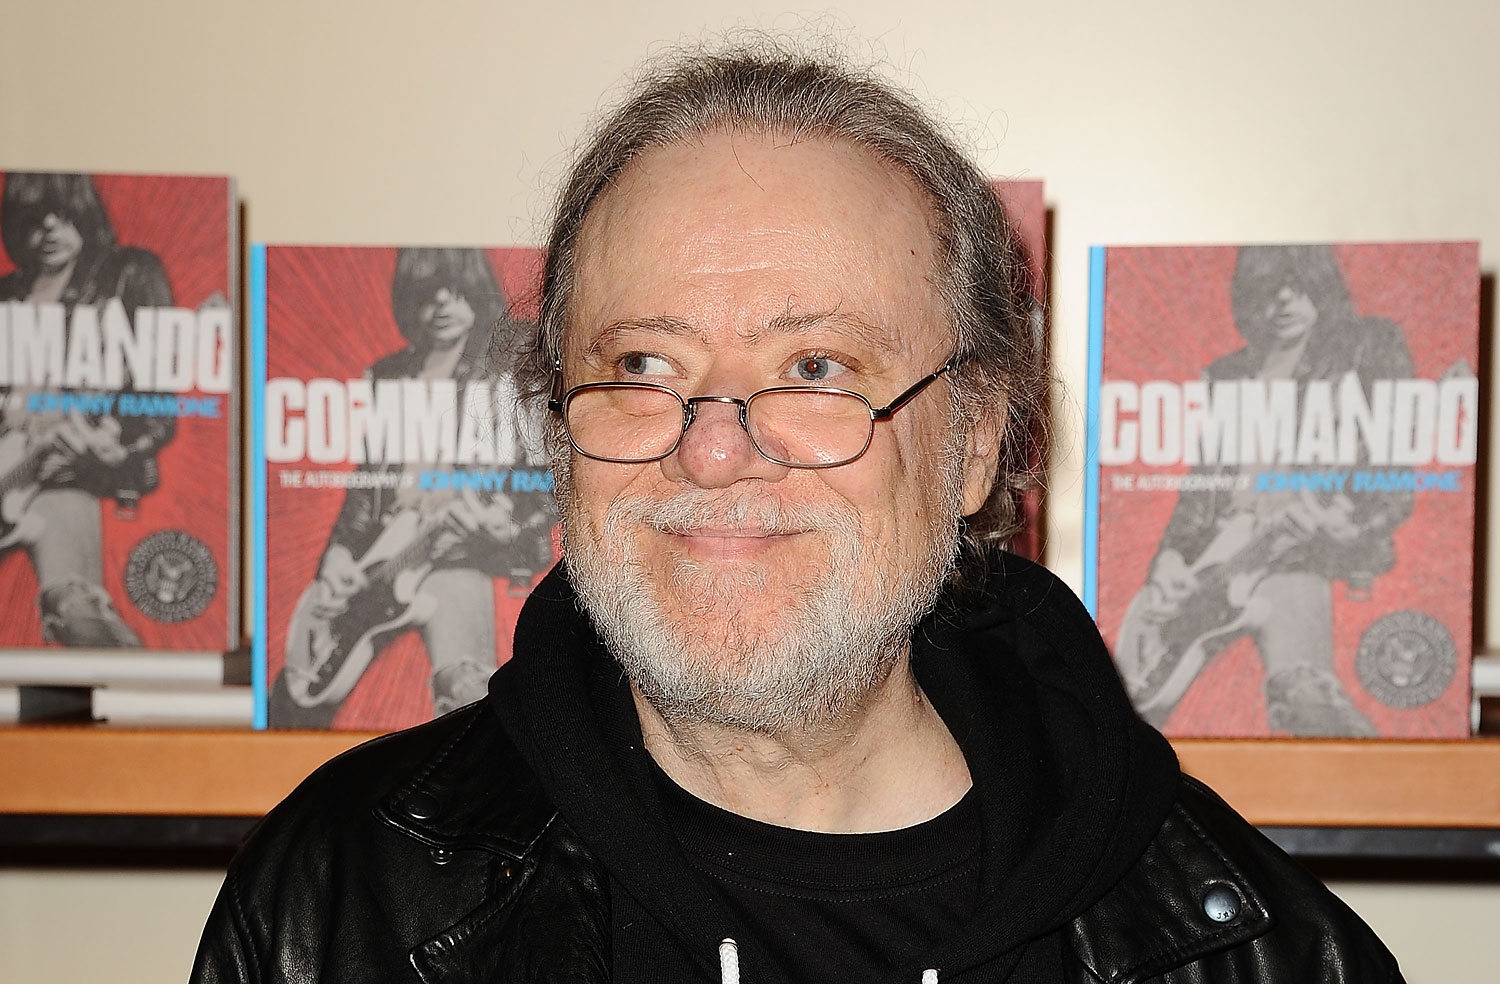 Tommy Ramone attends the 'Commando: The Autobiography of Johnny Ramone' book party at BookMarc on April 27, 2012 in Los Angeles.